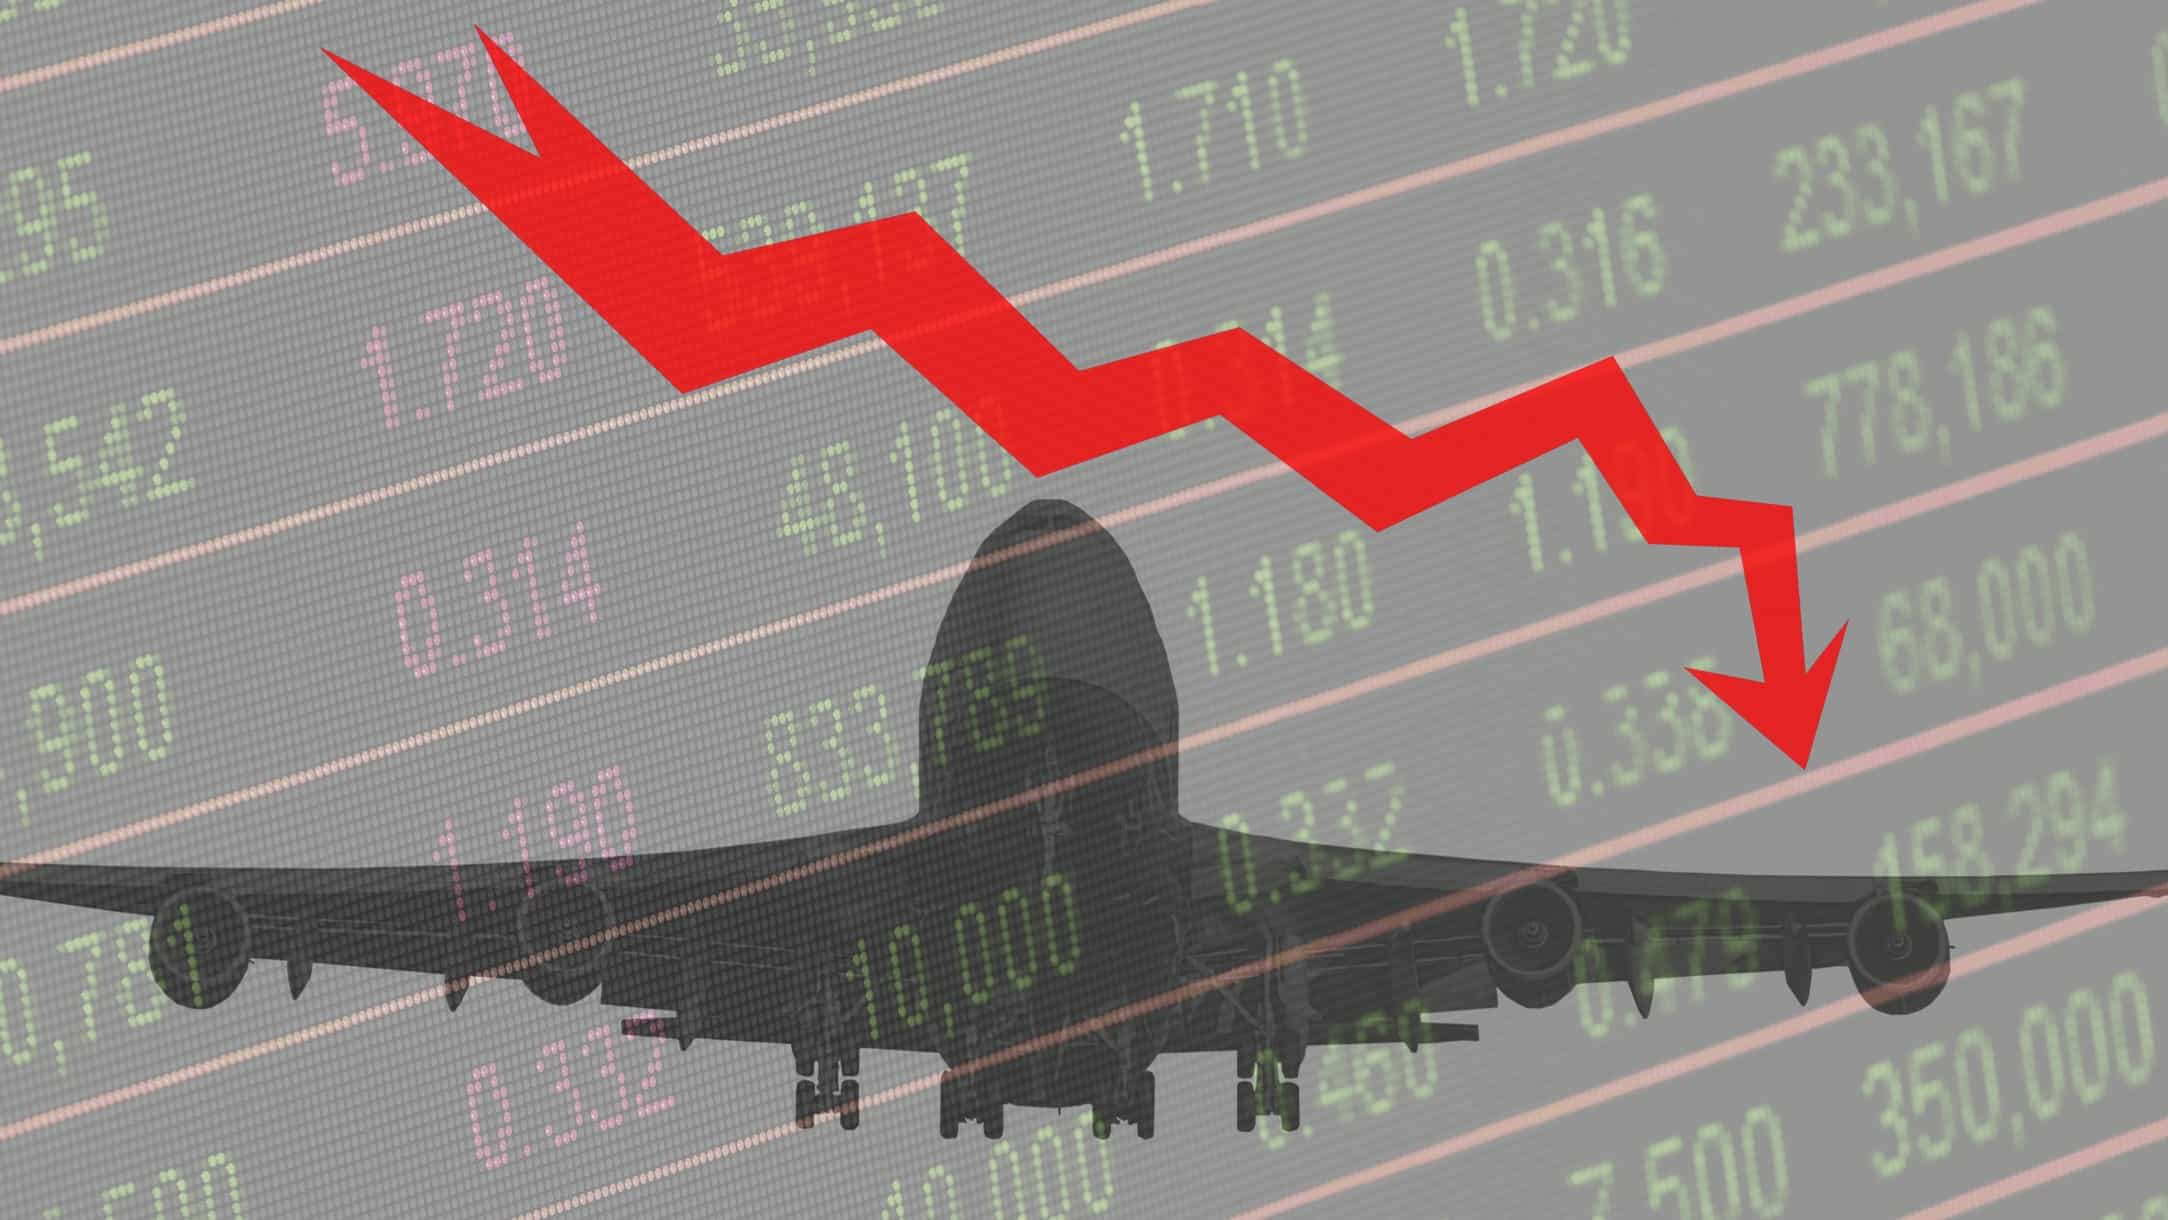 outline of a Qantas plane against backdrop of share price chart